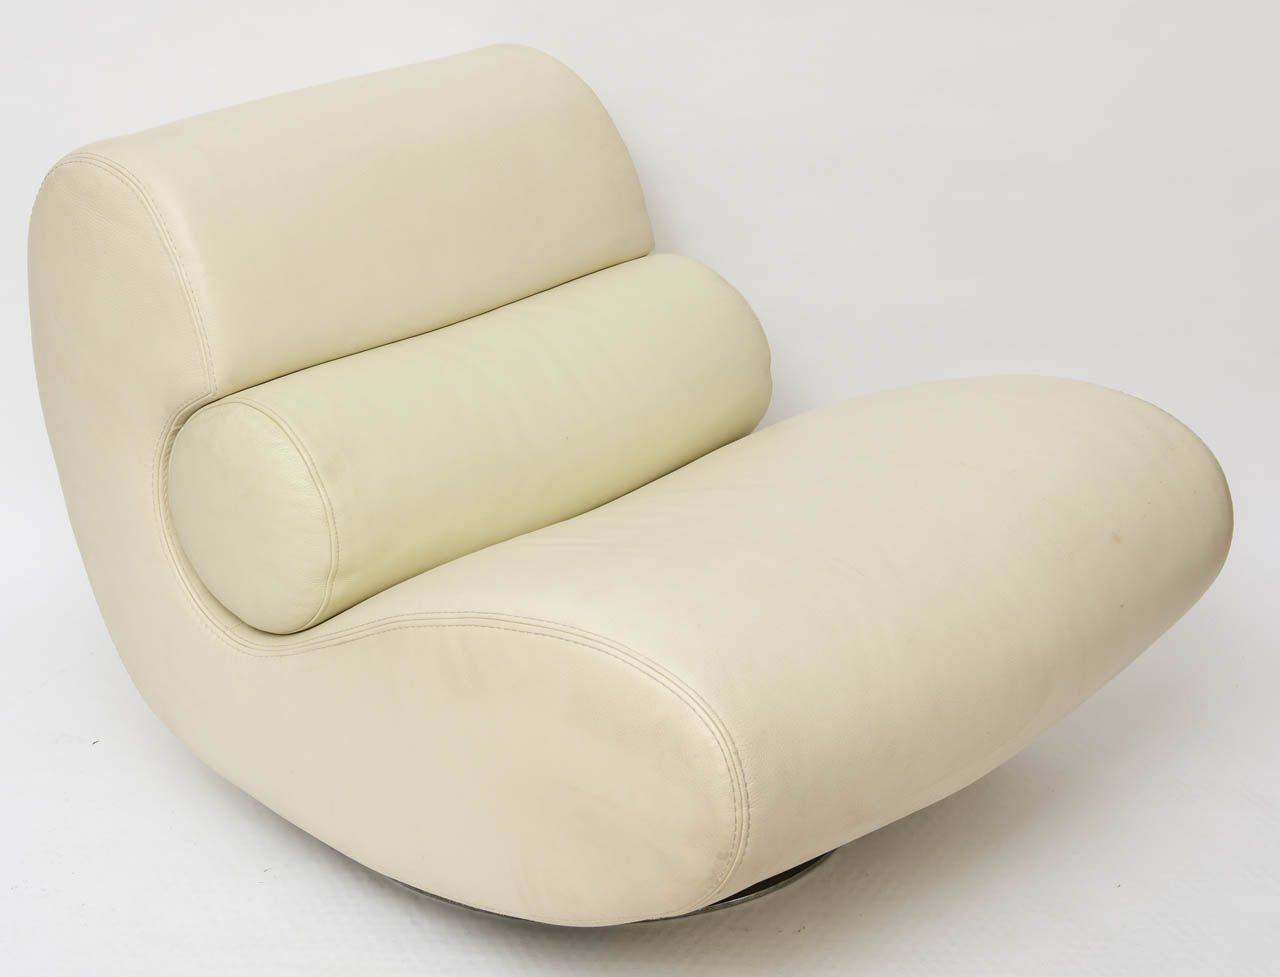 Lounge Seat By Roche Bobois Lounge Seating Modern Lounge Chairs Seating